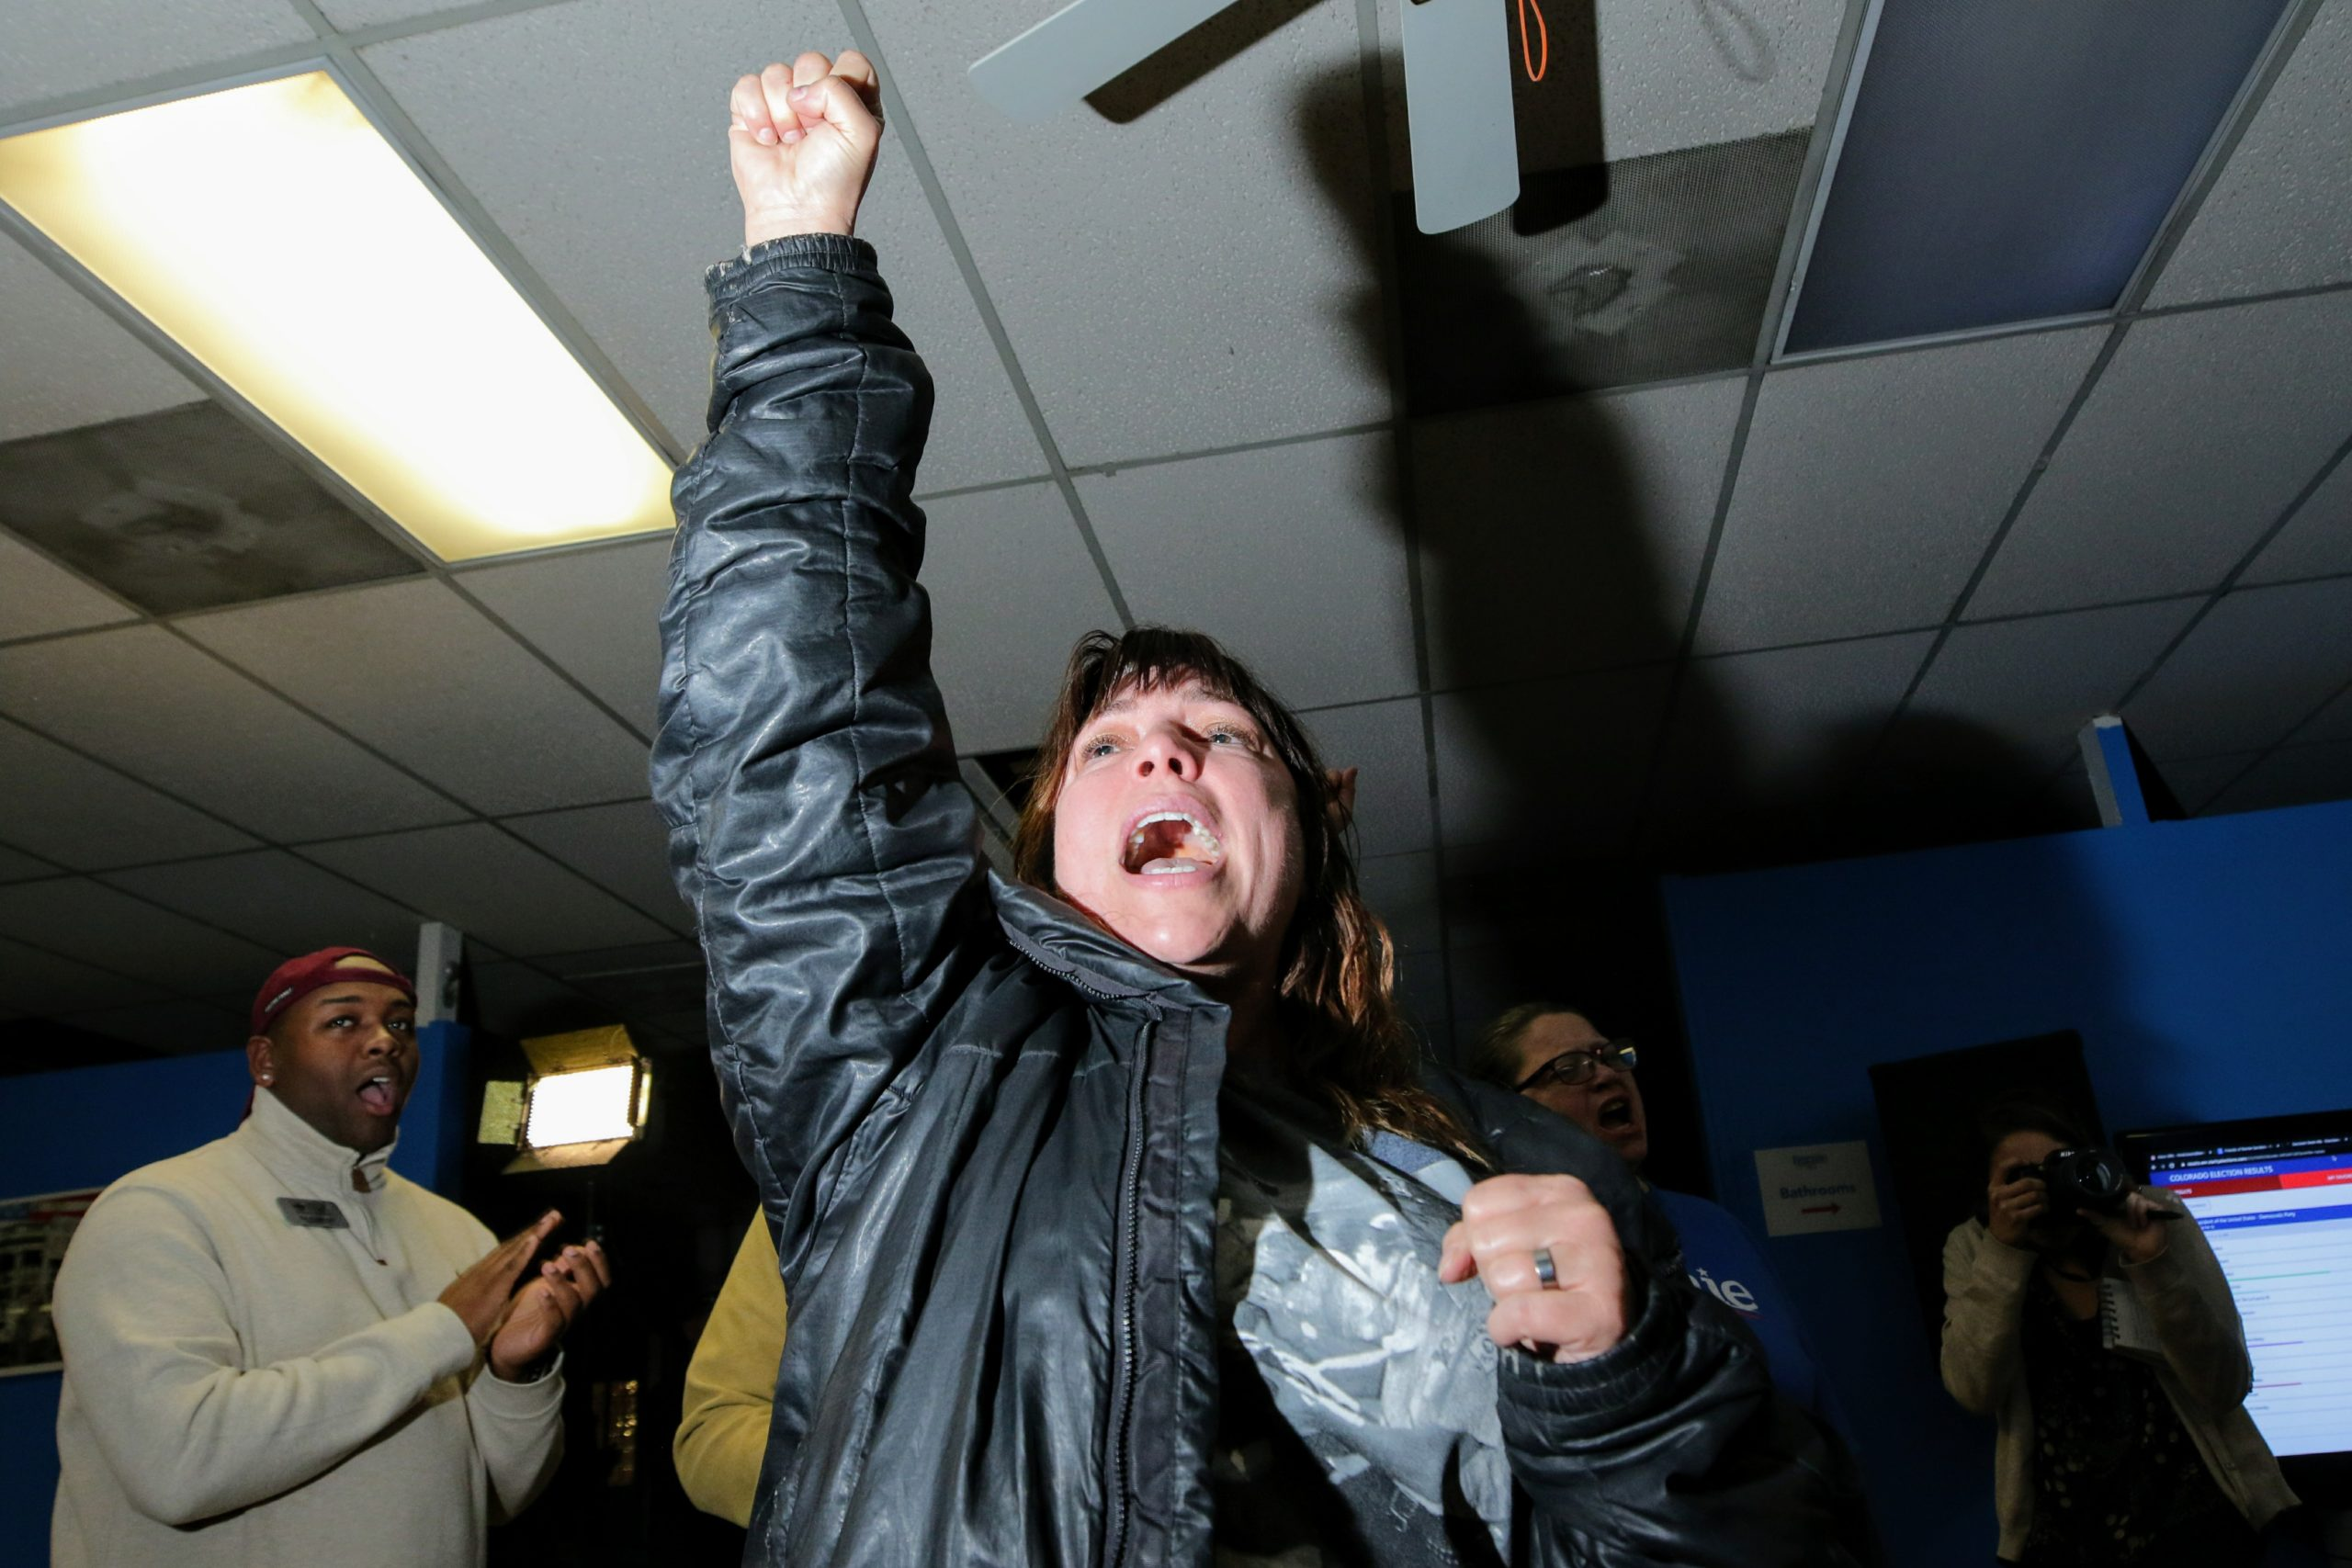 Volunteer RaeLeann Smith at the Bernie Sanders campaign headquarters celebrates as the Vermont Senator is projected to win Colorado.